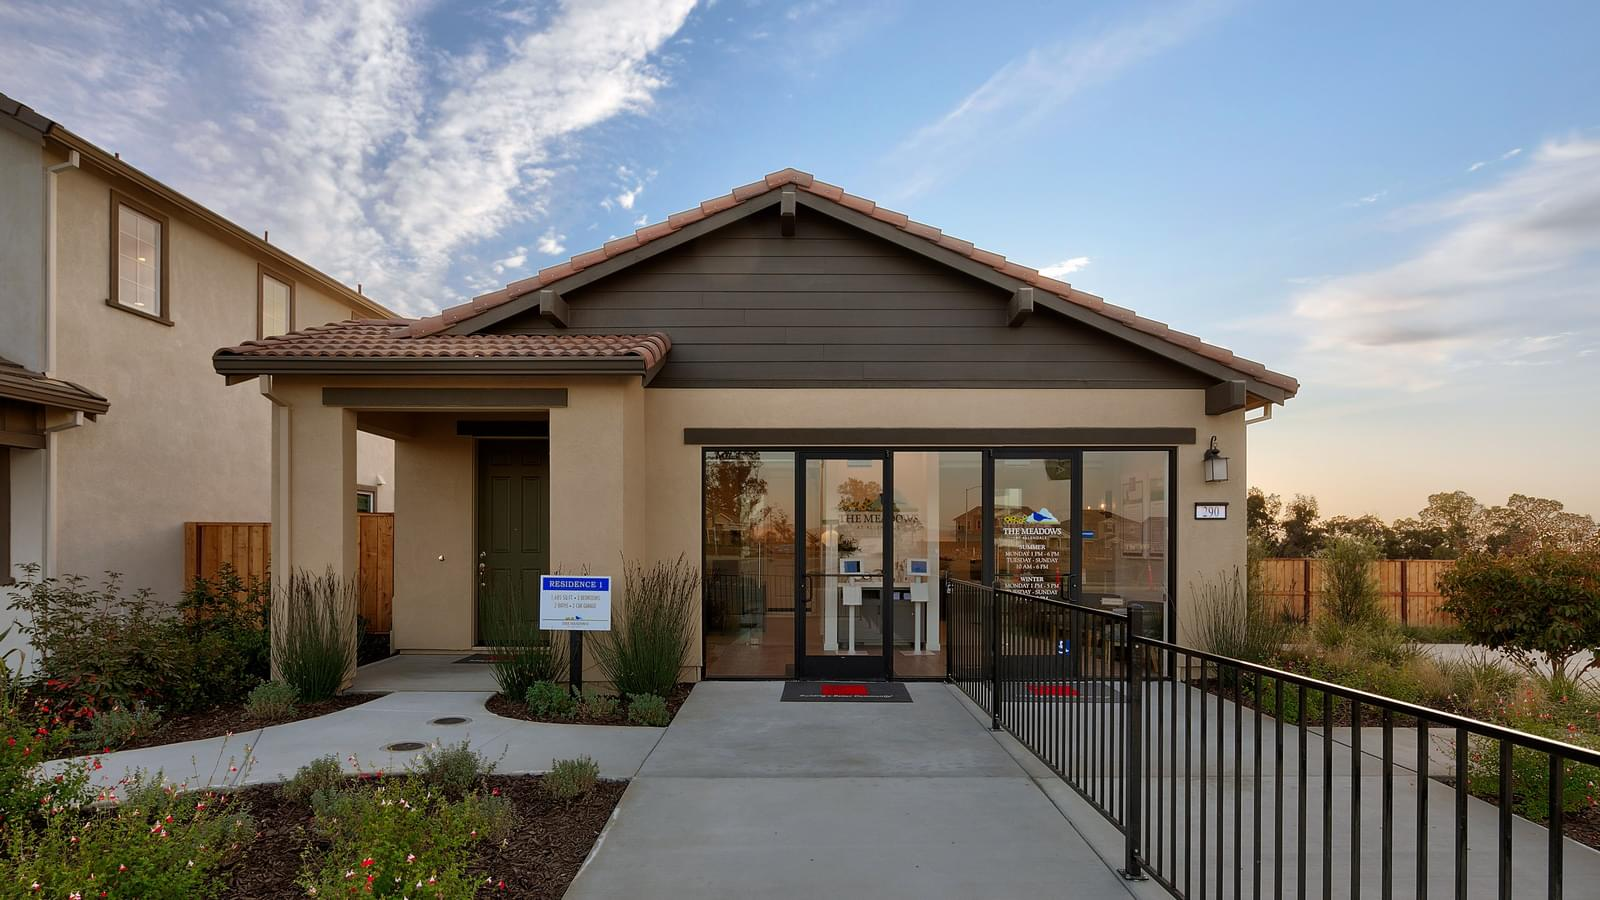 The Meadows at Allendale - A DeNova Homes Community in Hollister, CA